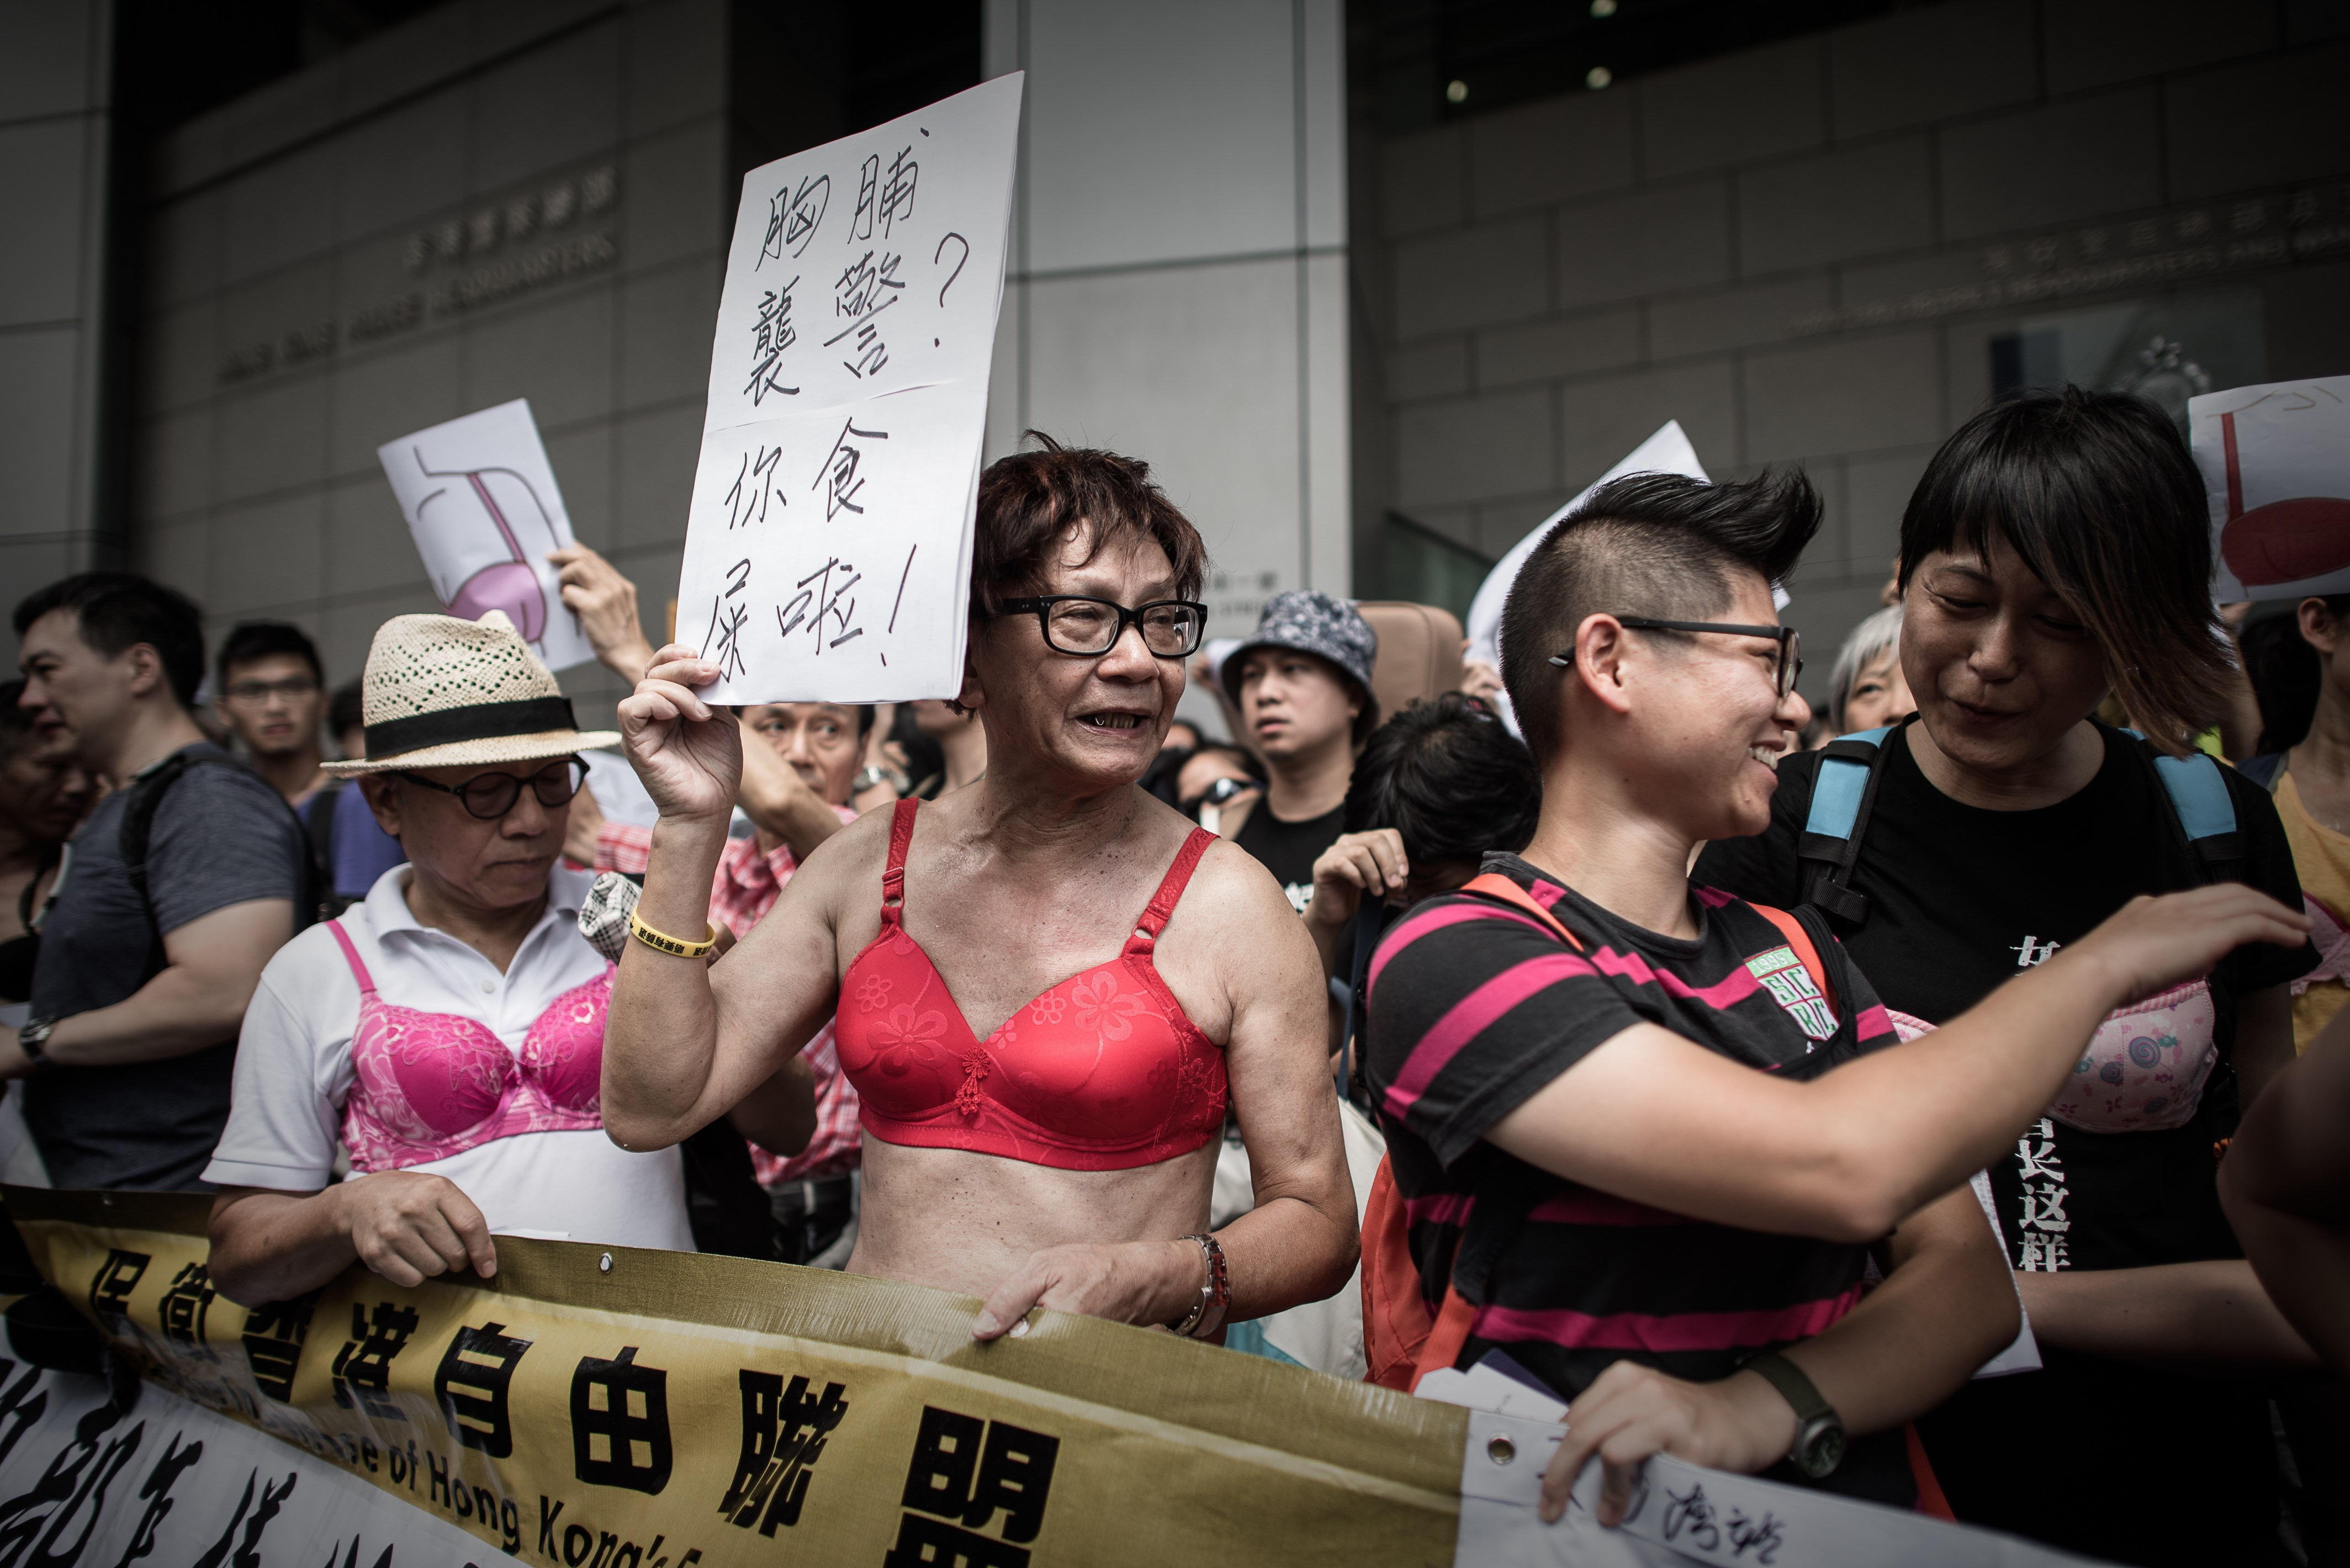 Protesters wear bras during a demonstration outside the police headquarters in Hong Kong on August 2, 2015.